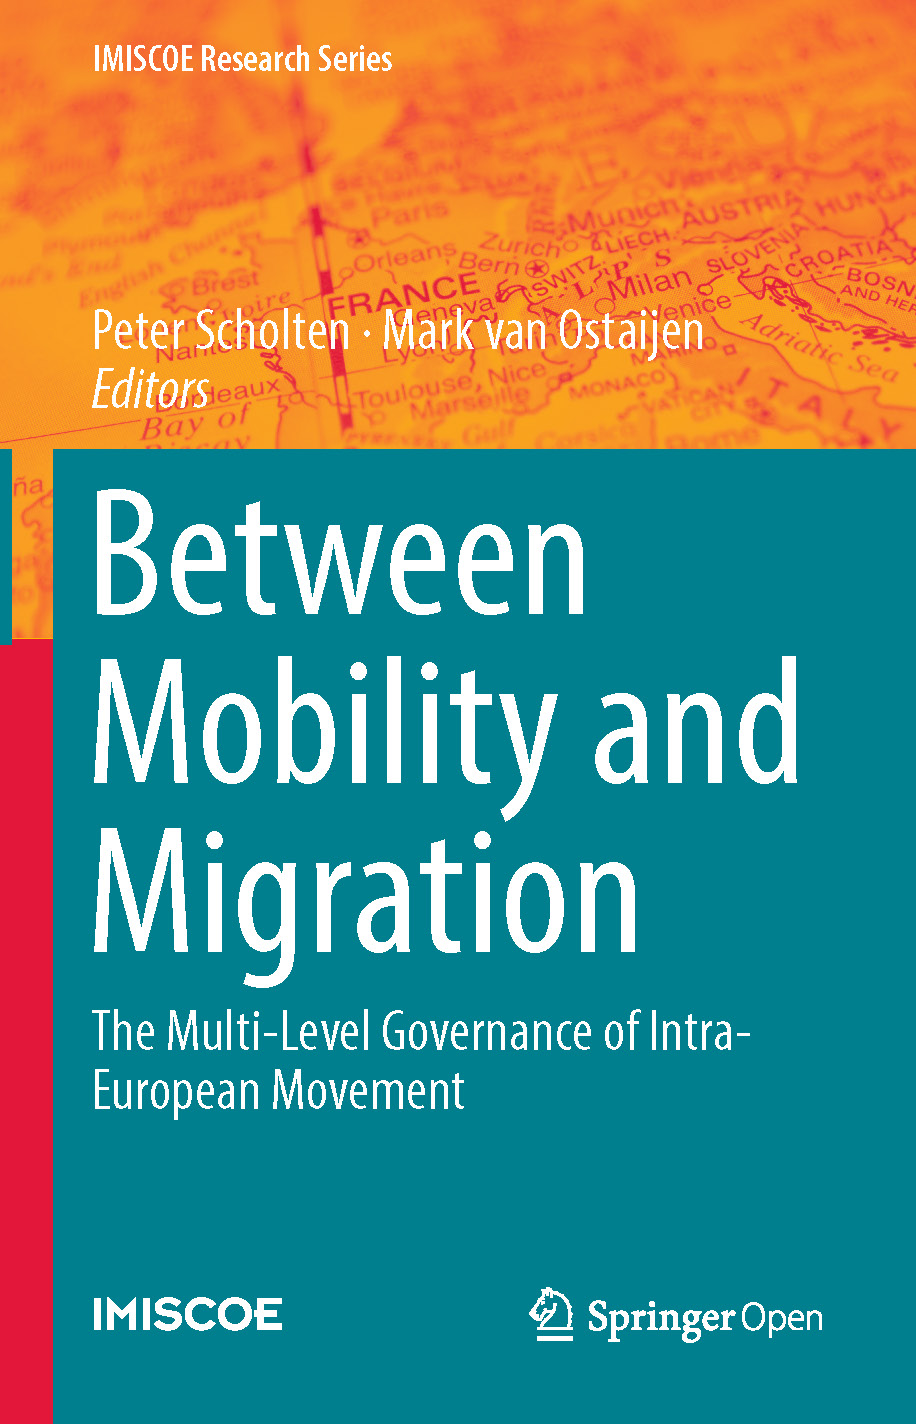 Cover of Between Mobility and Migration